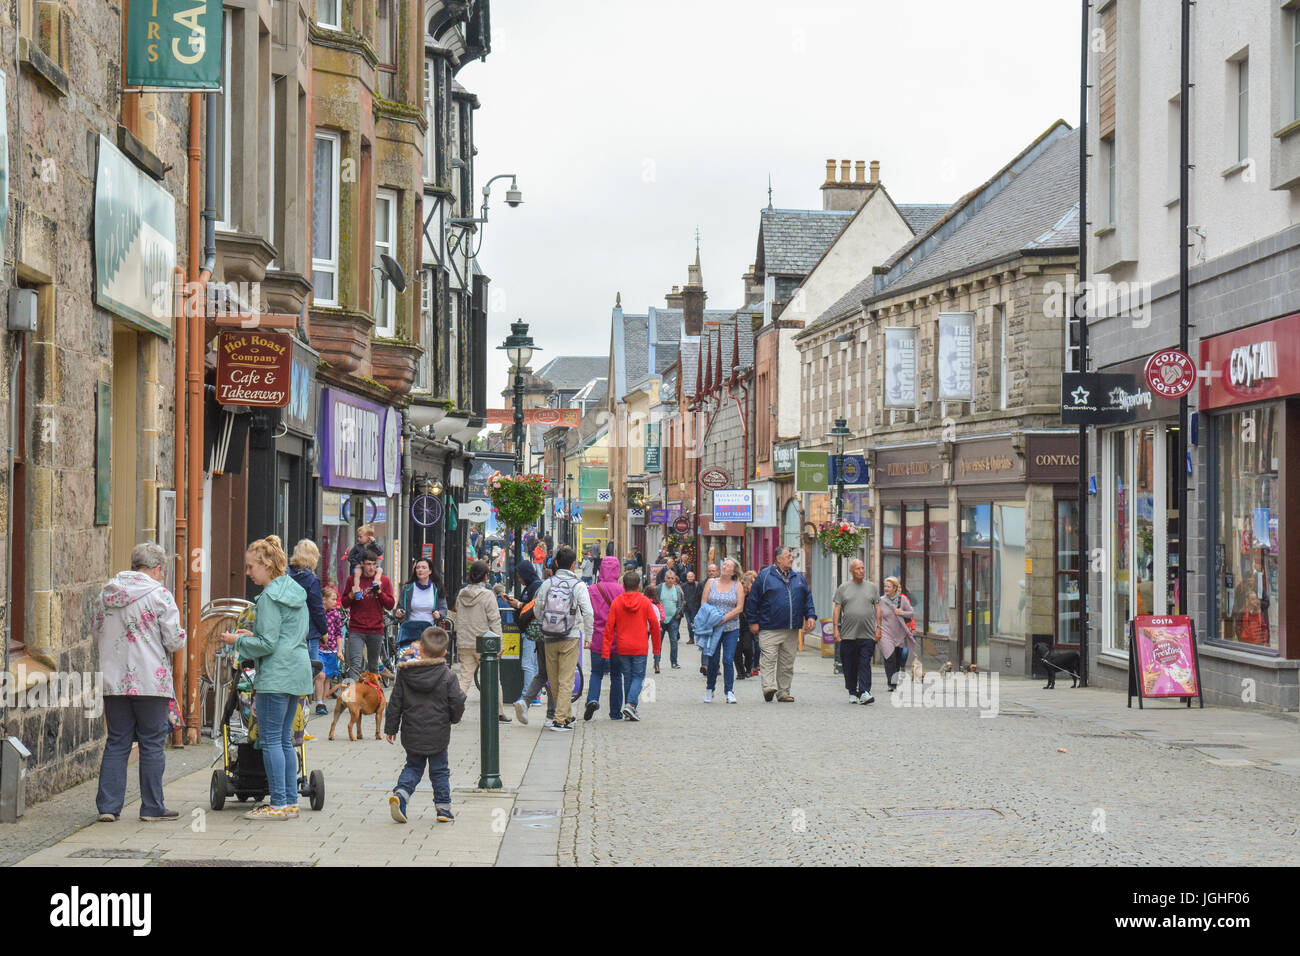 Fort William High Street and town centre, Highland, Scotland, UK Stock Photo